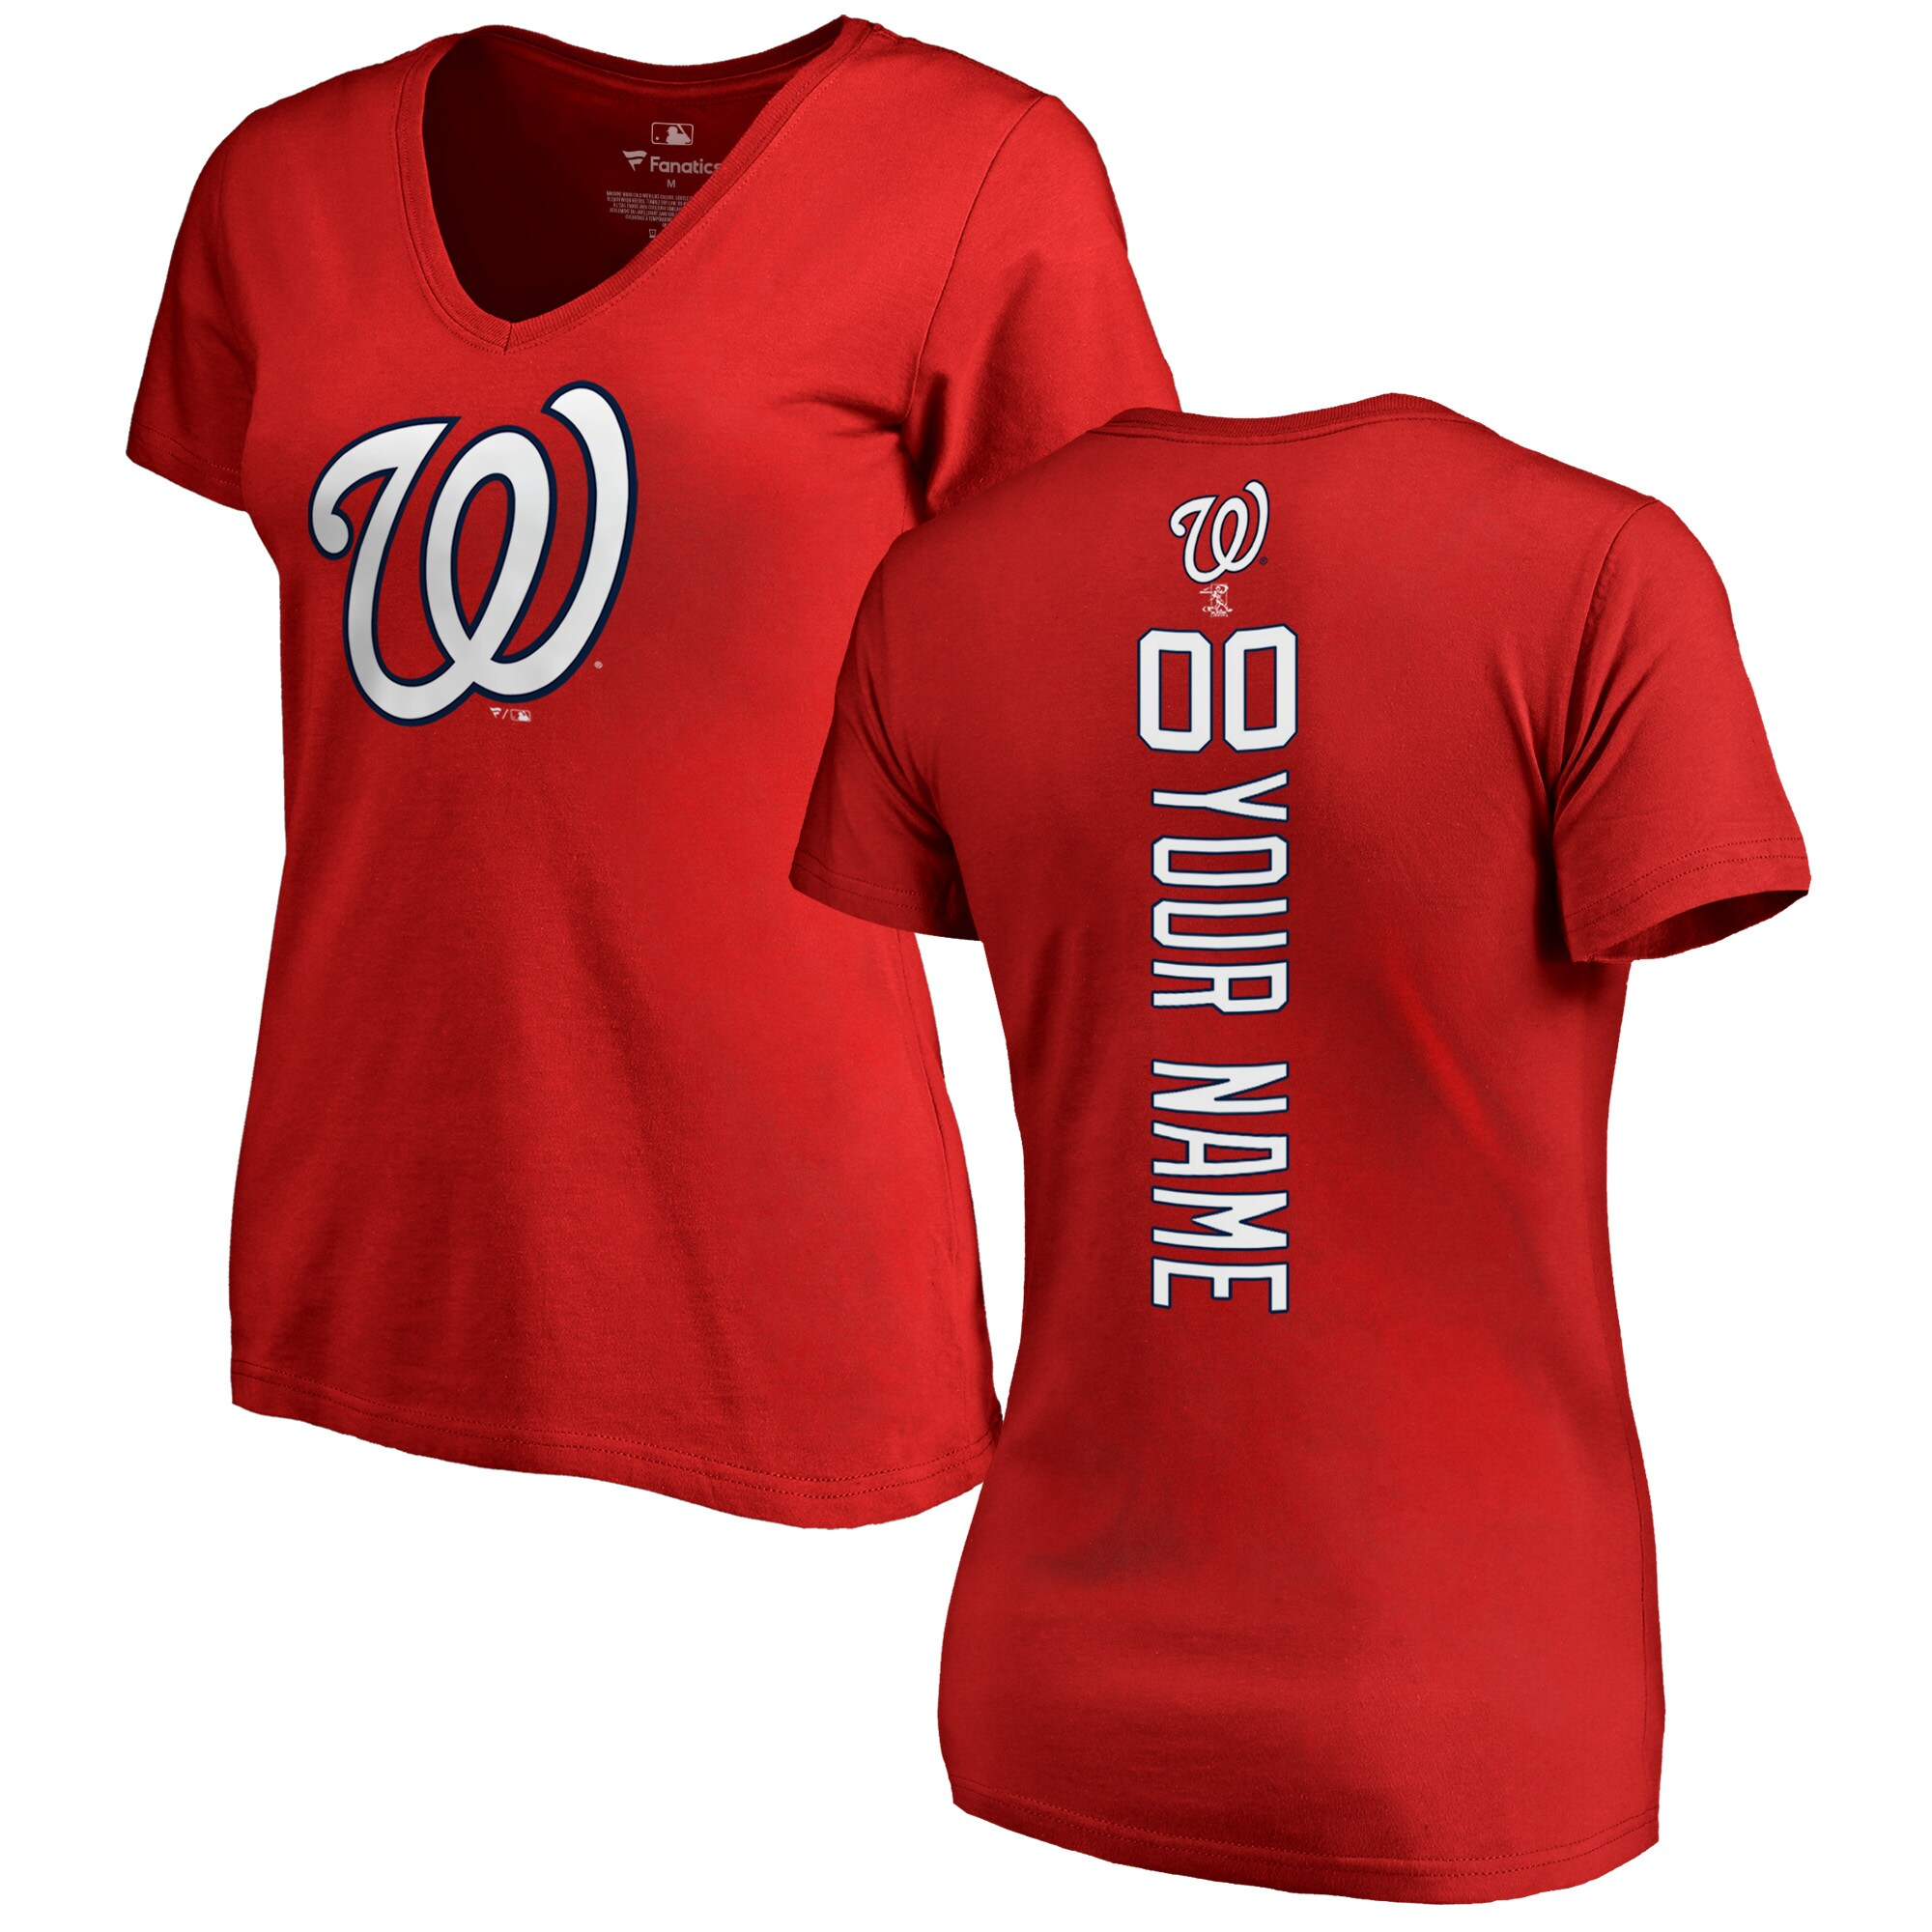 Washington Nationals Fanatics Branded Women's Personalized Playmaker V-Neck T-Shirt - Red